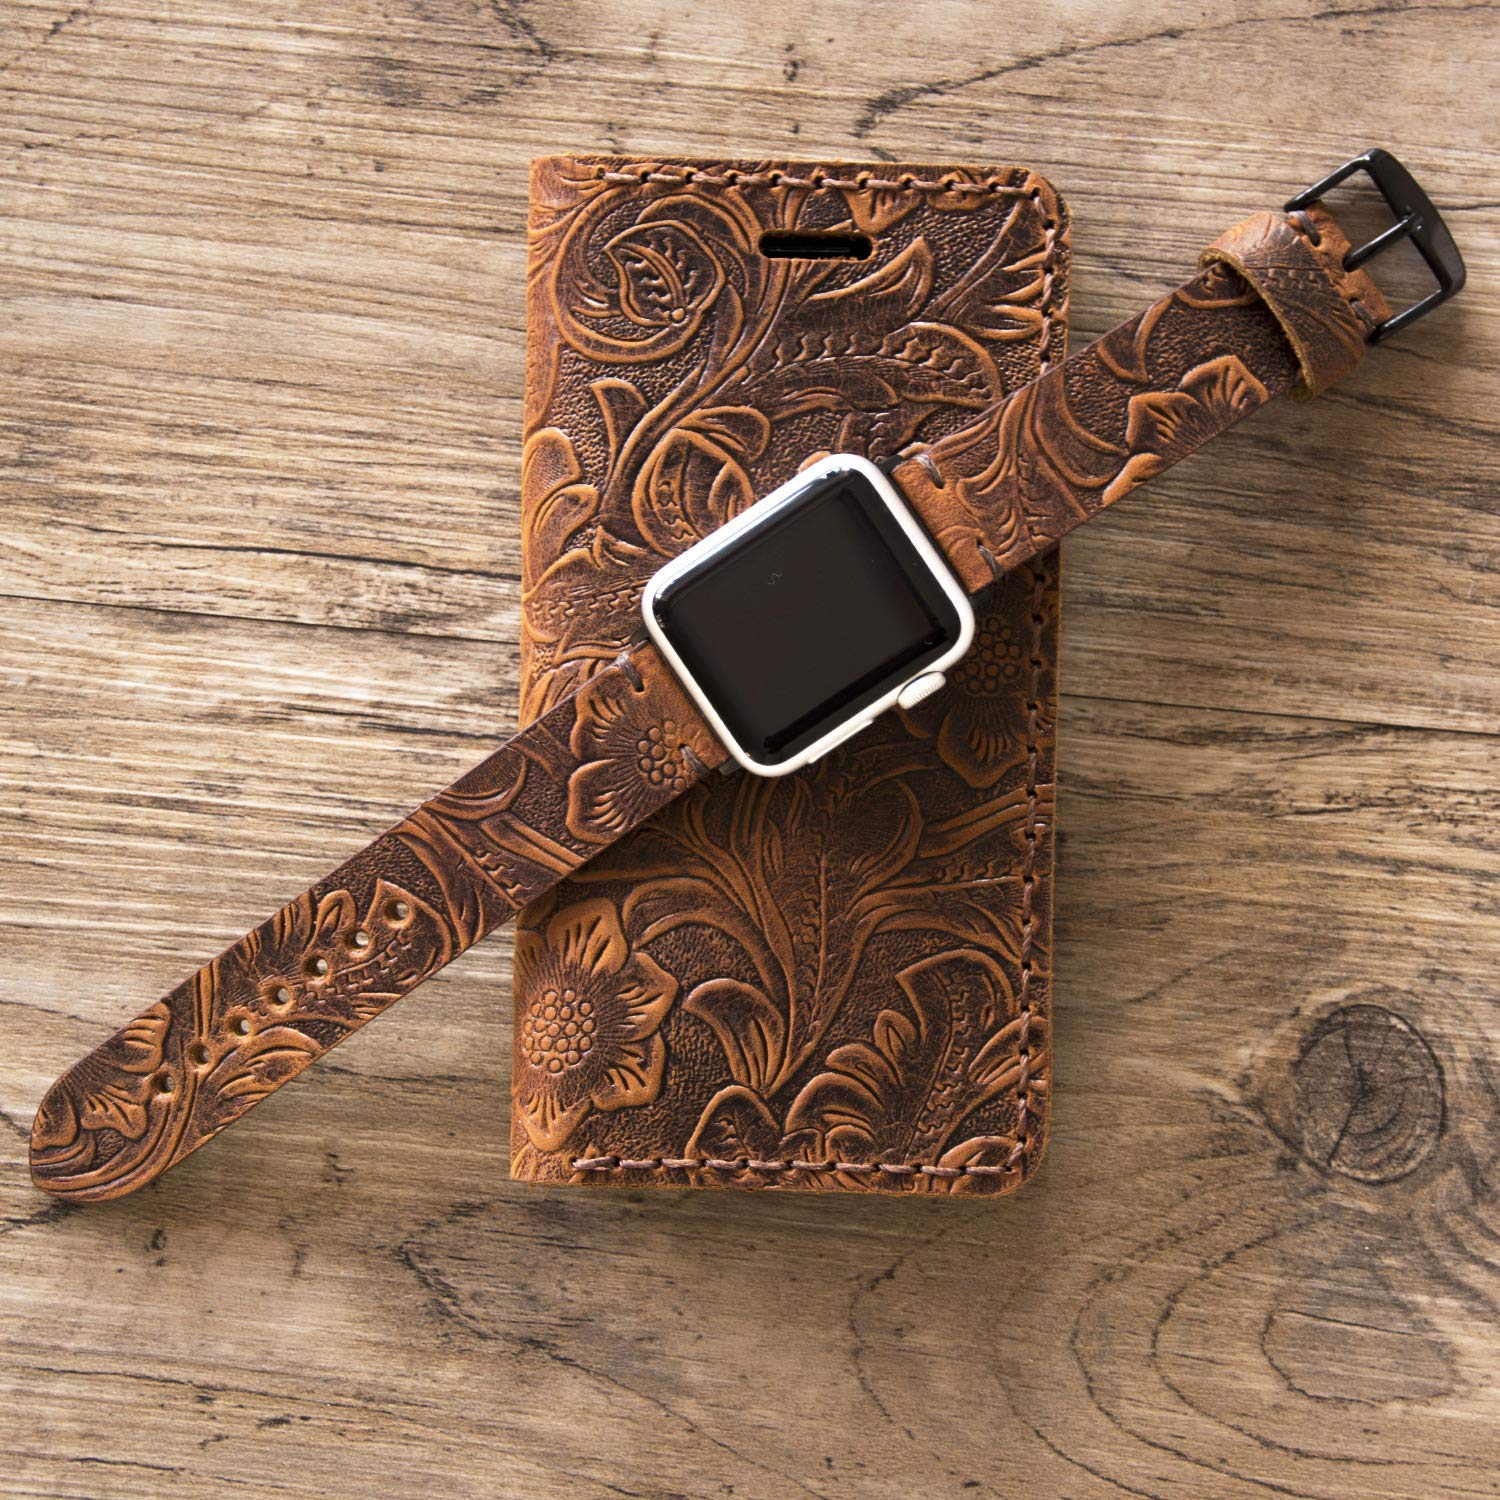 11 Pro cell Phone Flip Cover Personalized Gift Leather iPhone 7//8 Plus Wallet Case Women Handmade Floral Tooled Design Western Apple X//XR//XS MAX